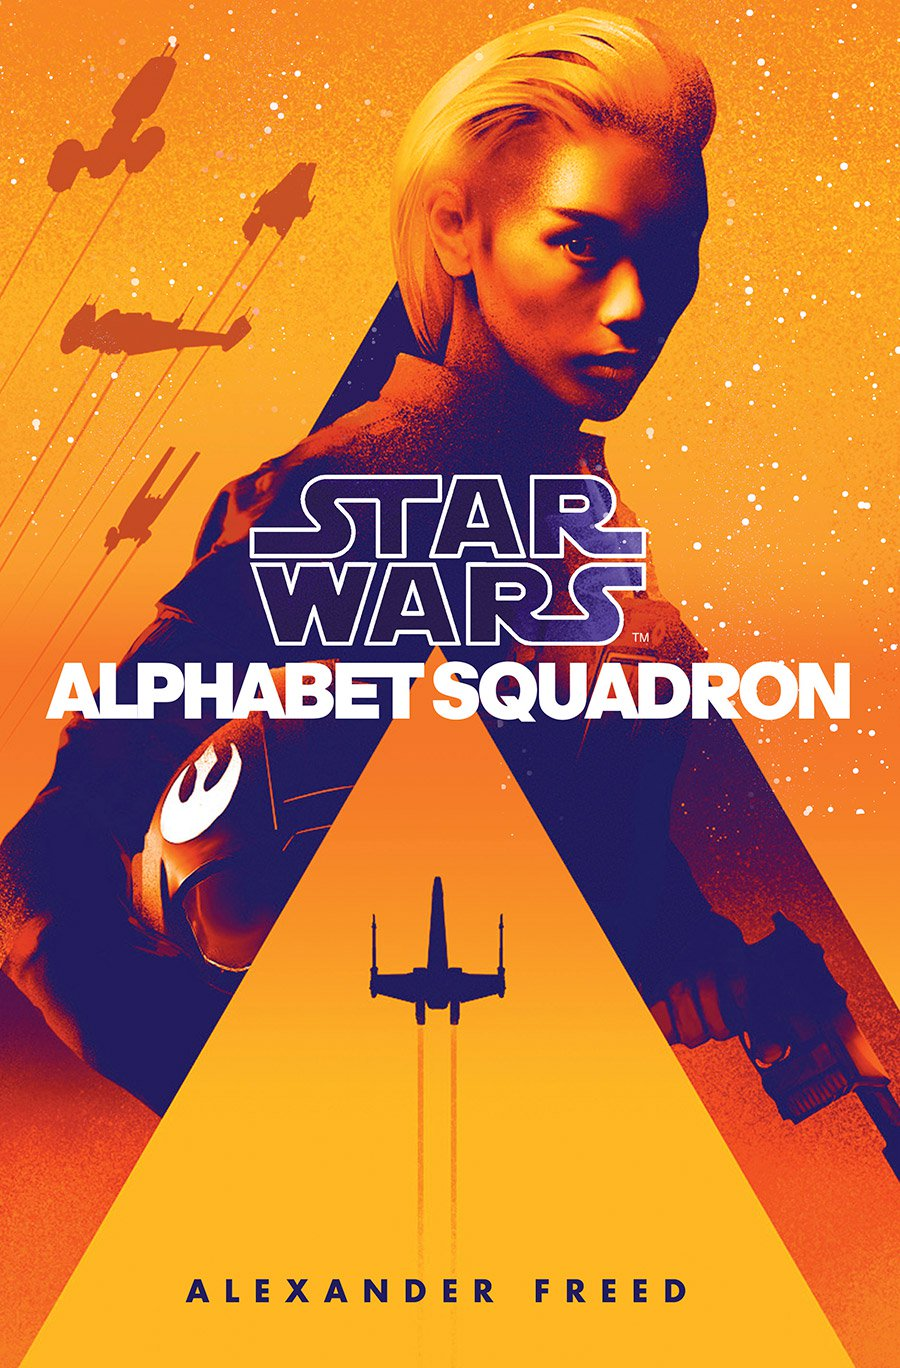 Star Wars Alphabet Squadron cover